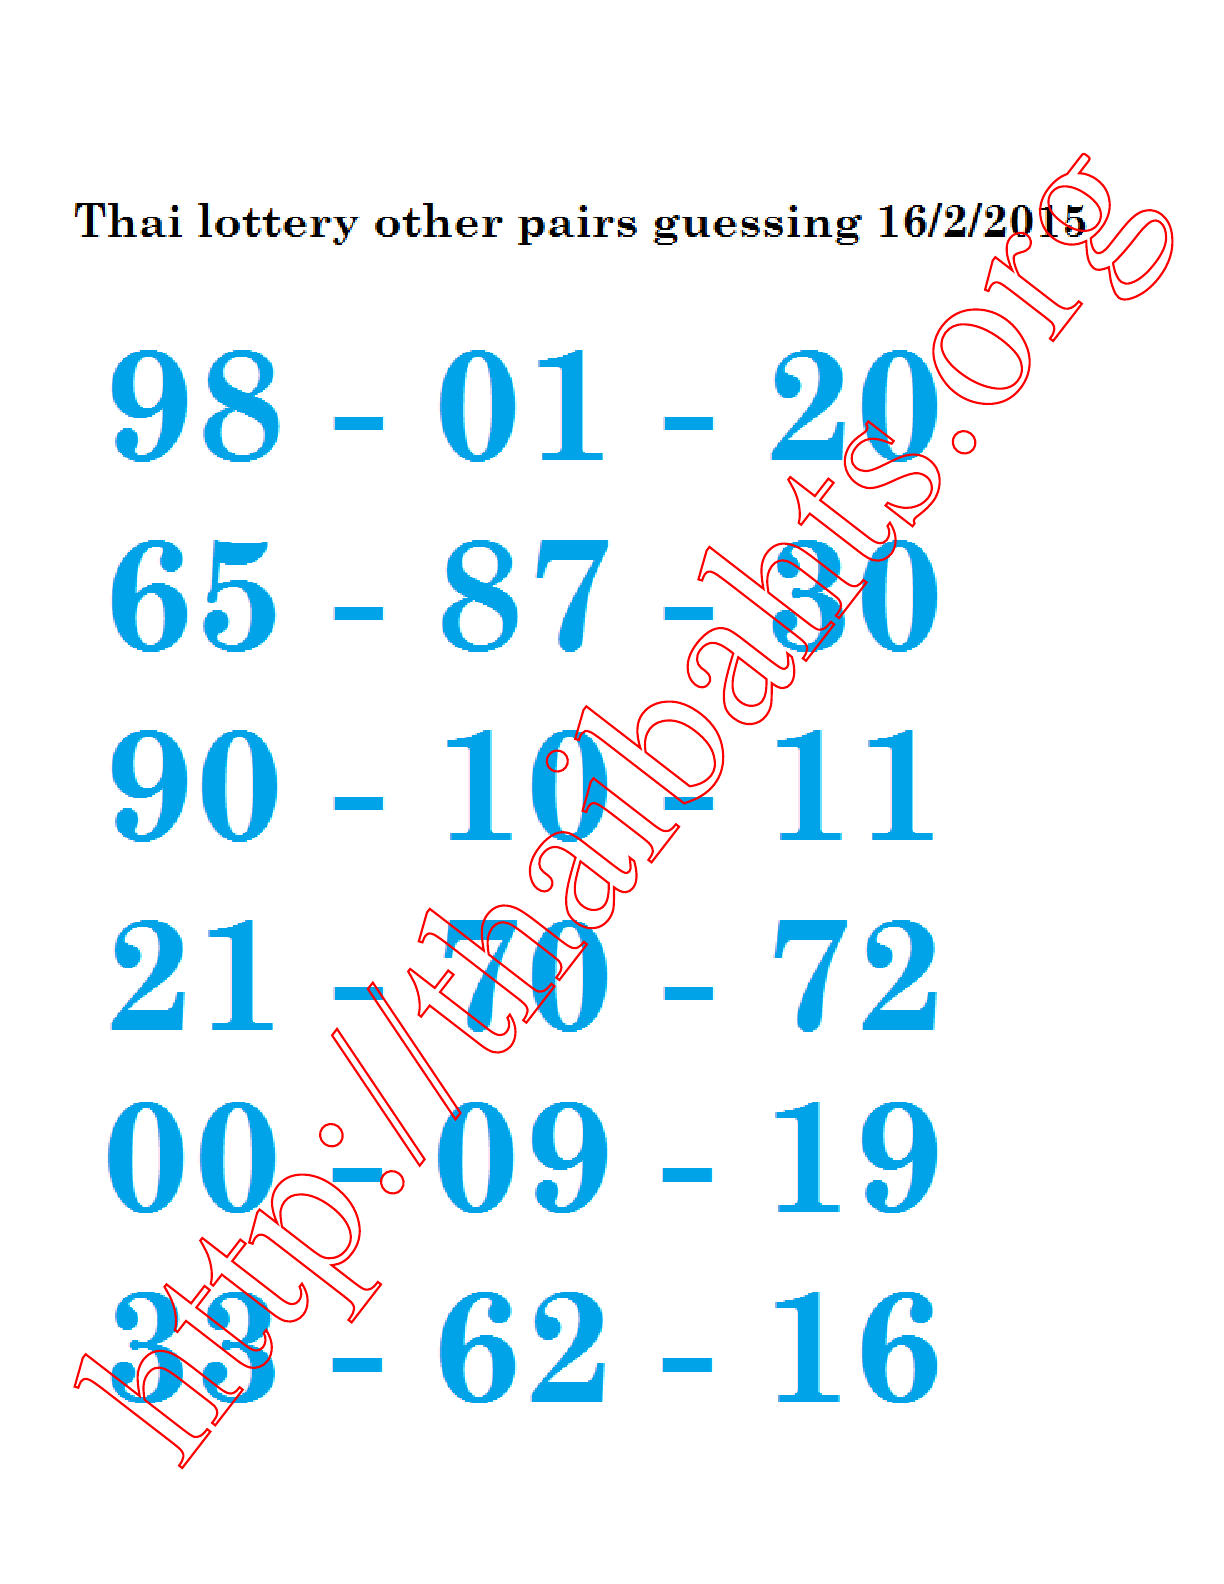 16.2.2015 Thai lottery guessing other pairs